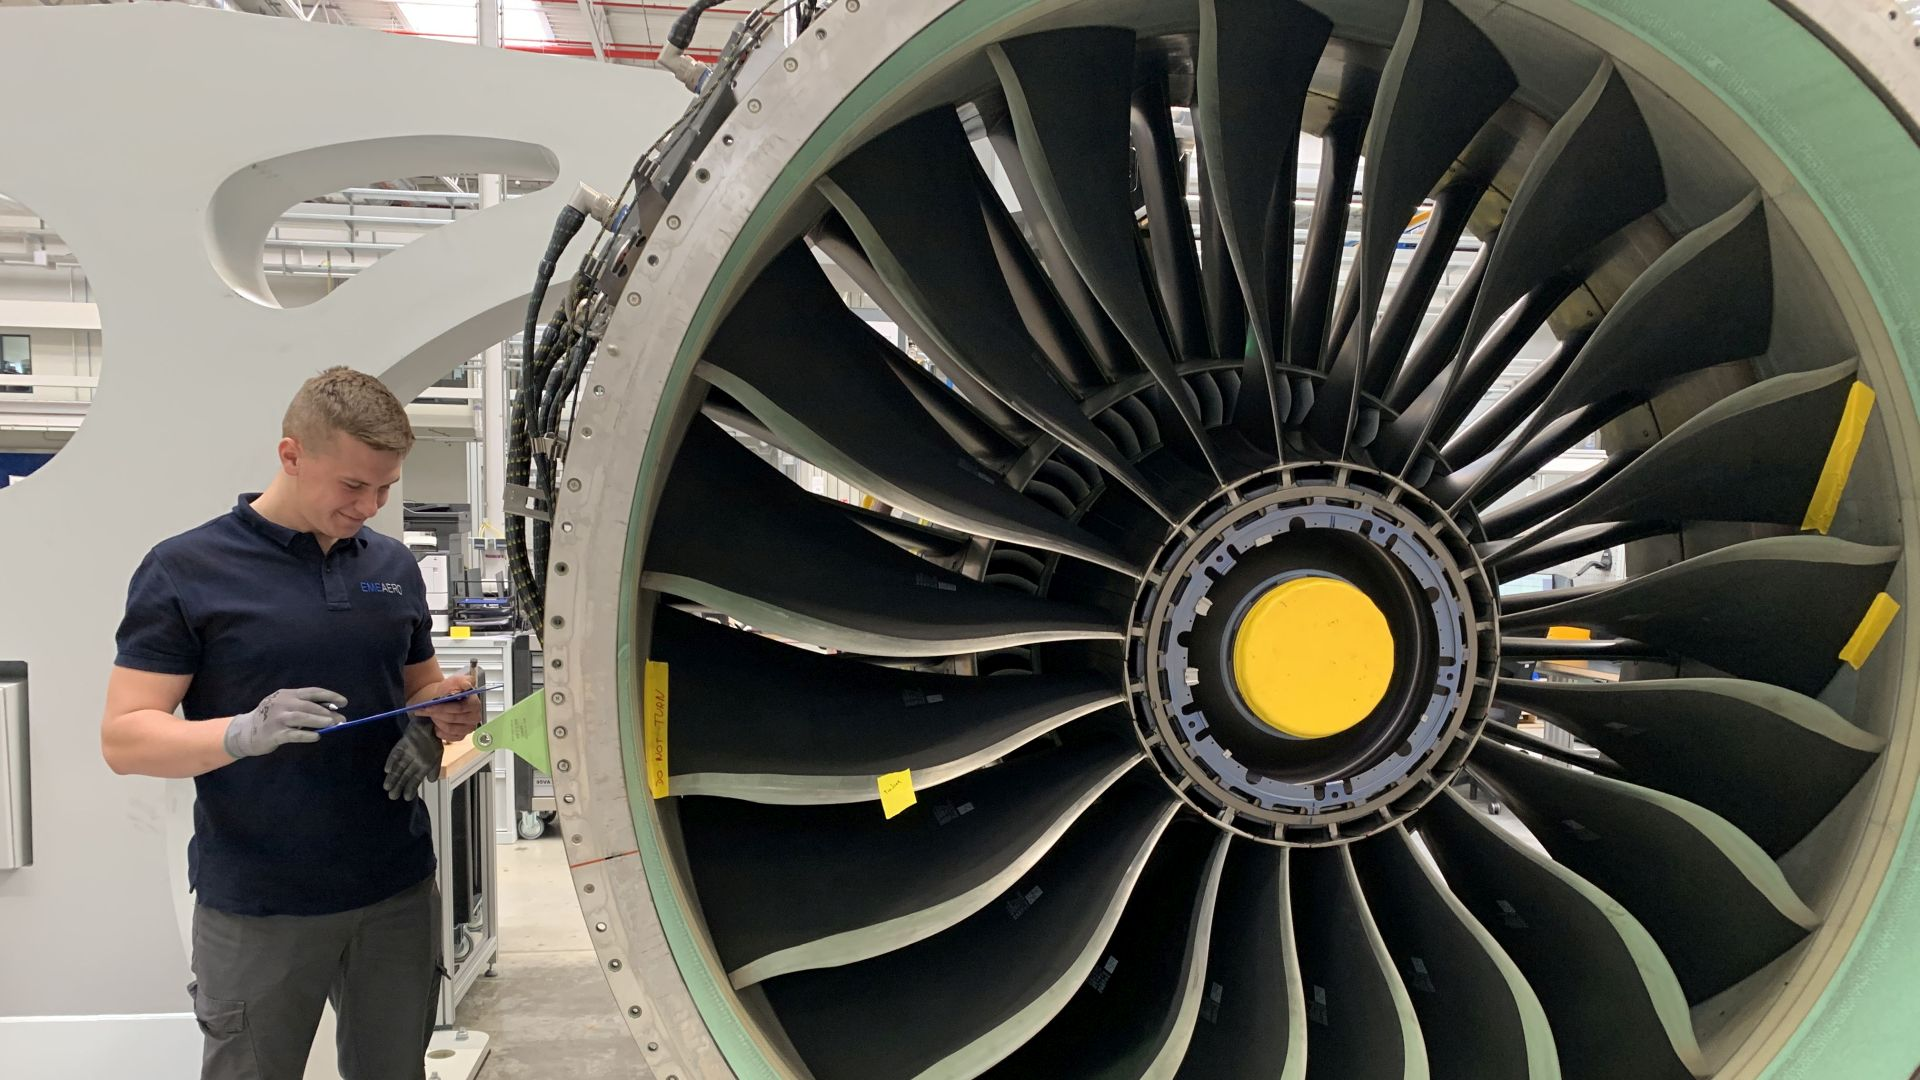 EME Aero, the engine services joint venture between Lufthansa Technik AG and MTU Aero Engines AG,